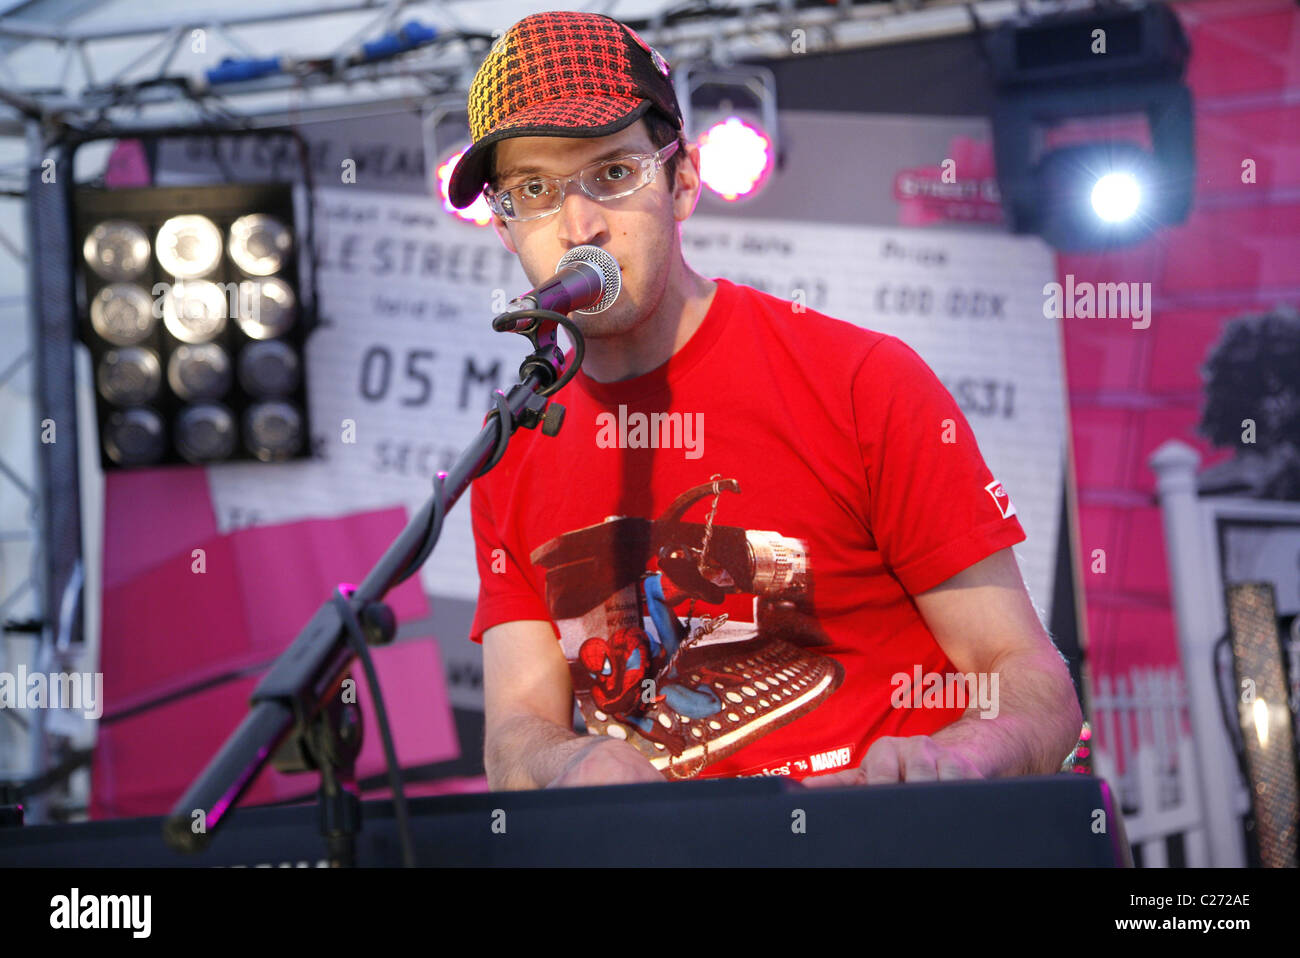 Gideon Conn performs live at a T-Mobile Street Gig  Oxford, England - 05.05.07 - Stock Image